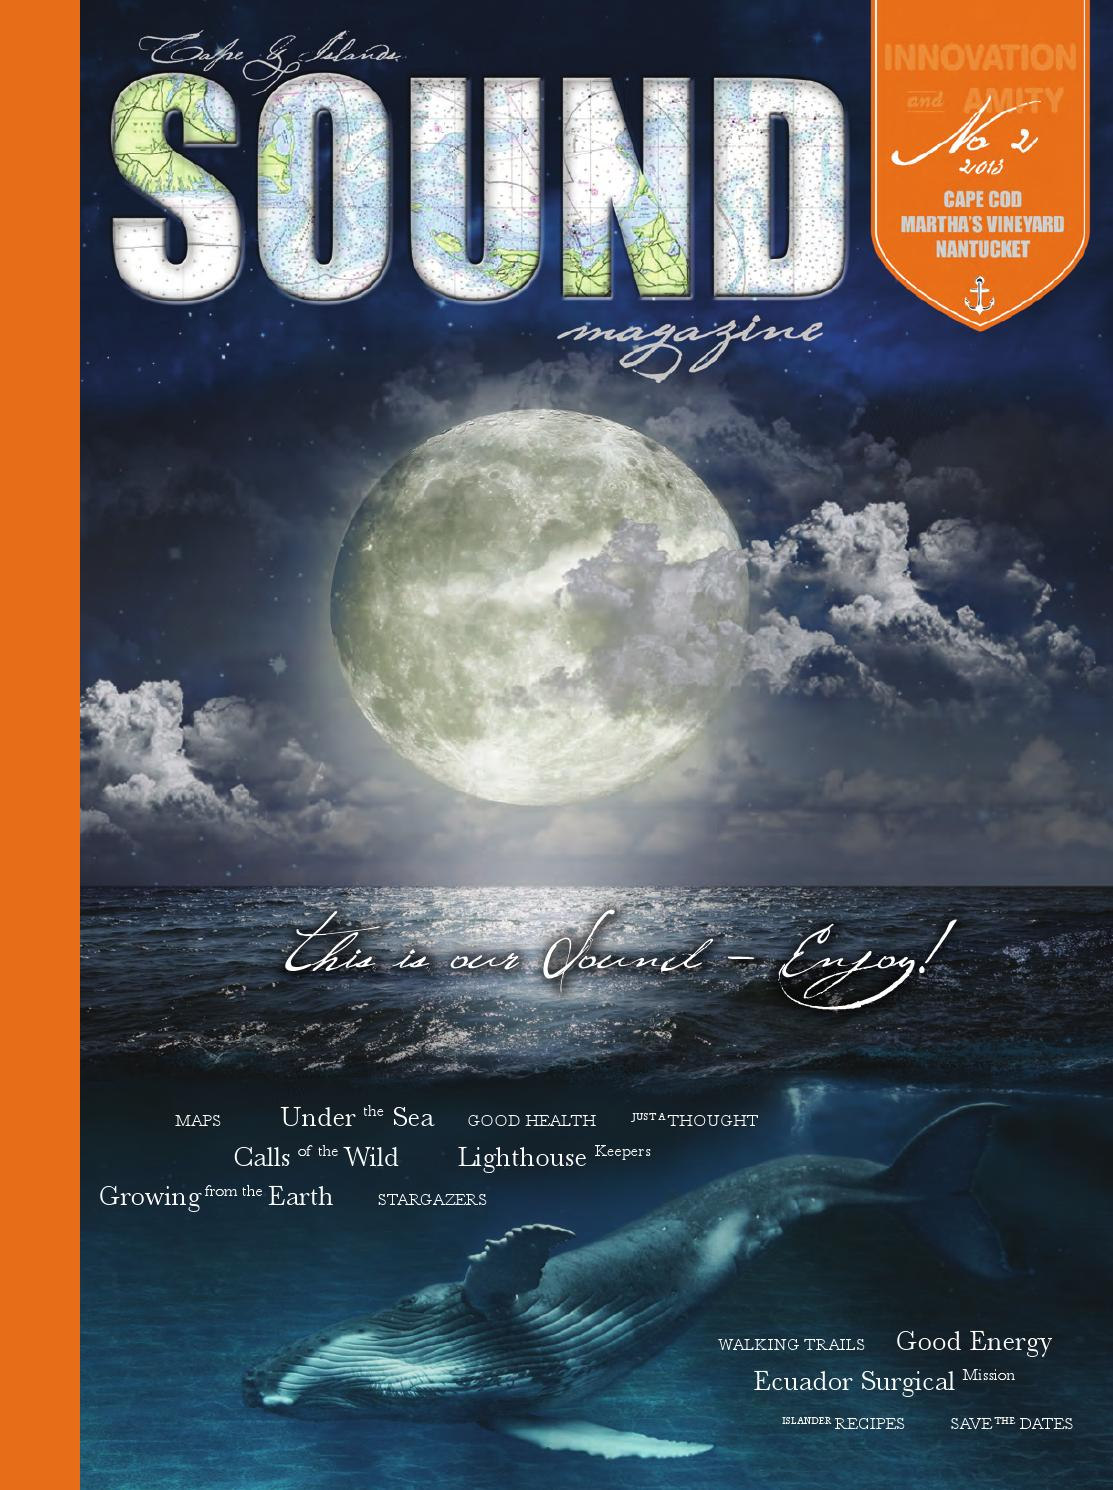 Amanda Tosch Wiki sound magazine: #2mind's eye productions, llc - issuu